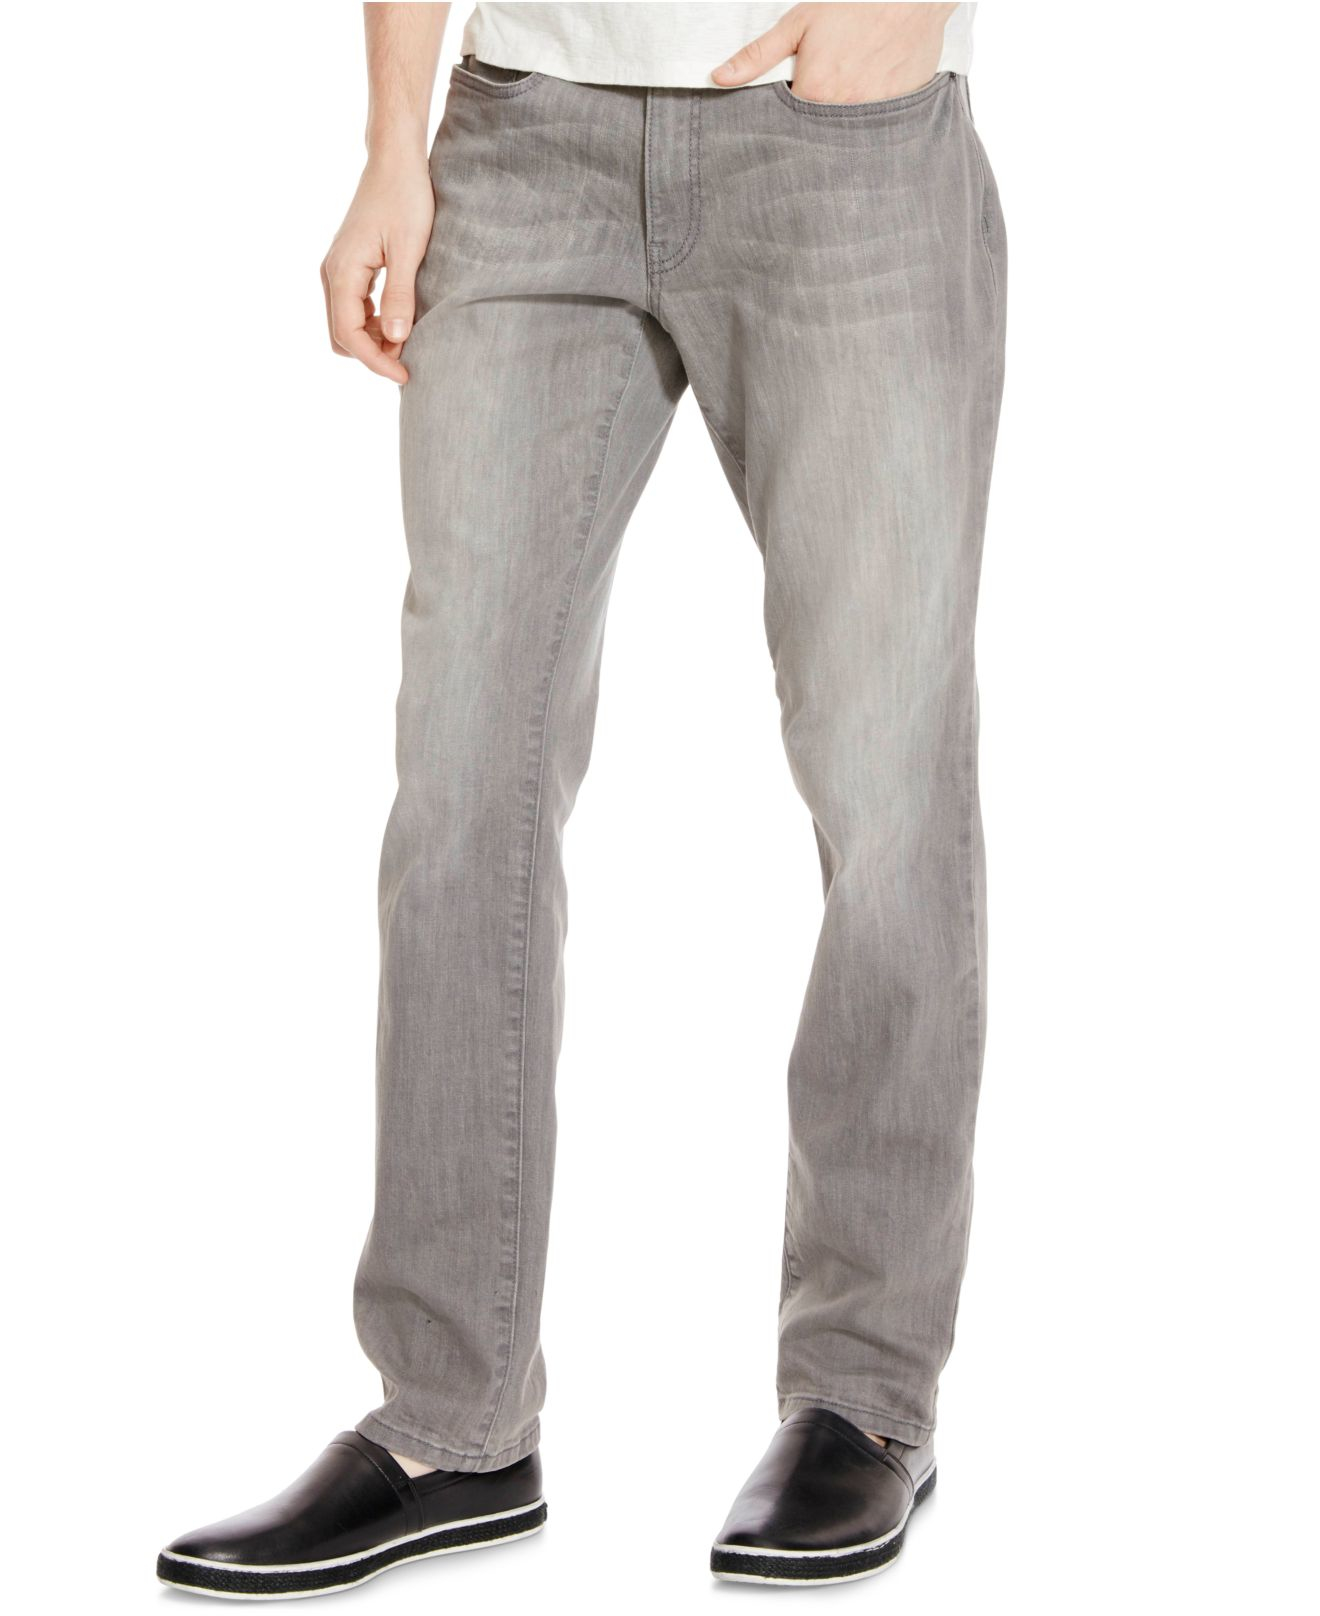 14a93d7f Kenneth Cole Reaction Men's Slim-fit Gray Wash Jeans in Gray for Men ...